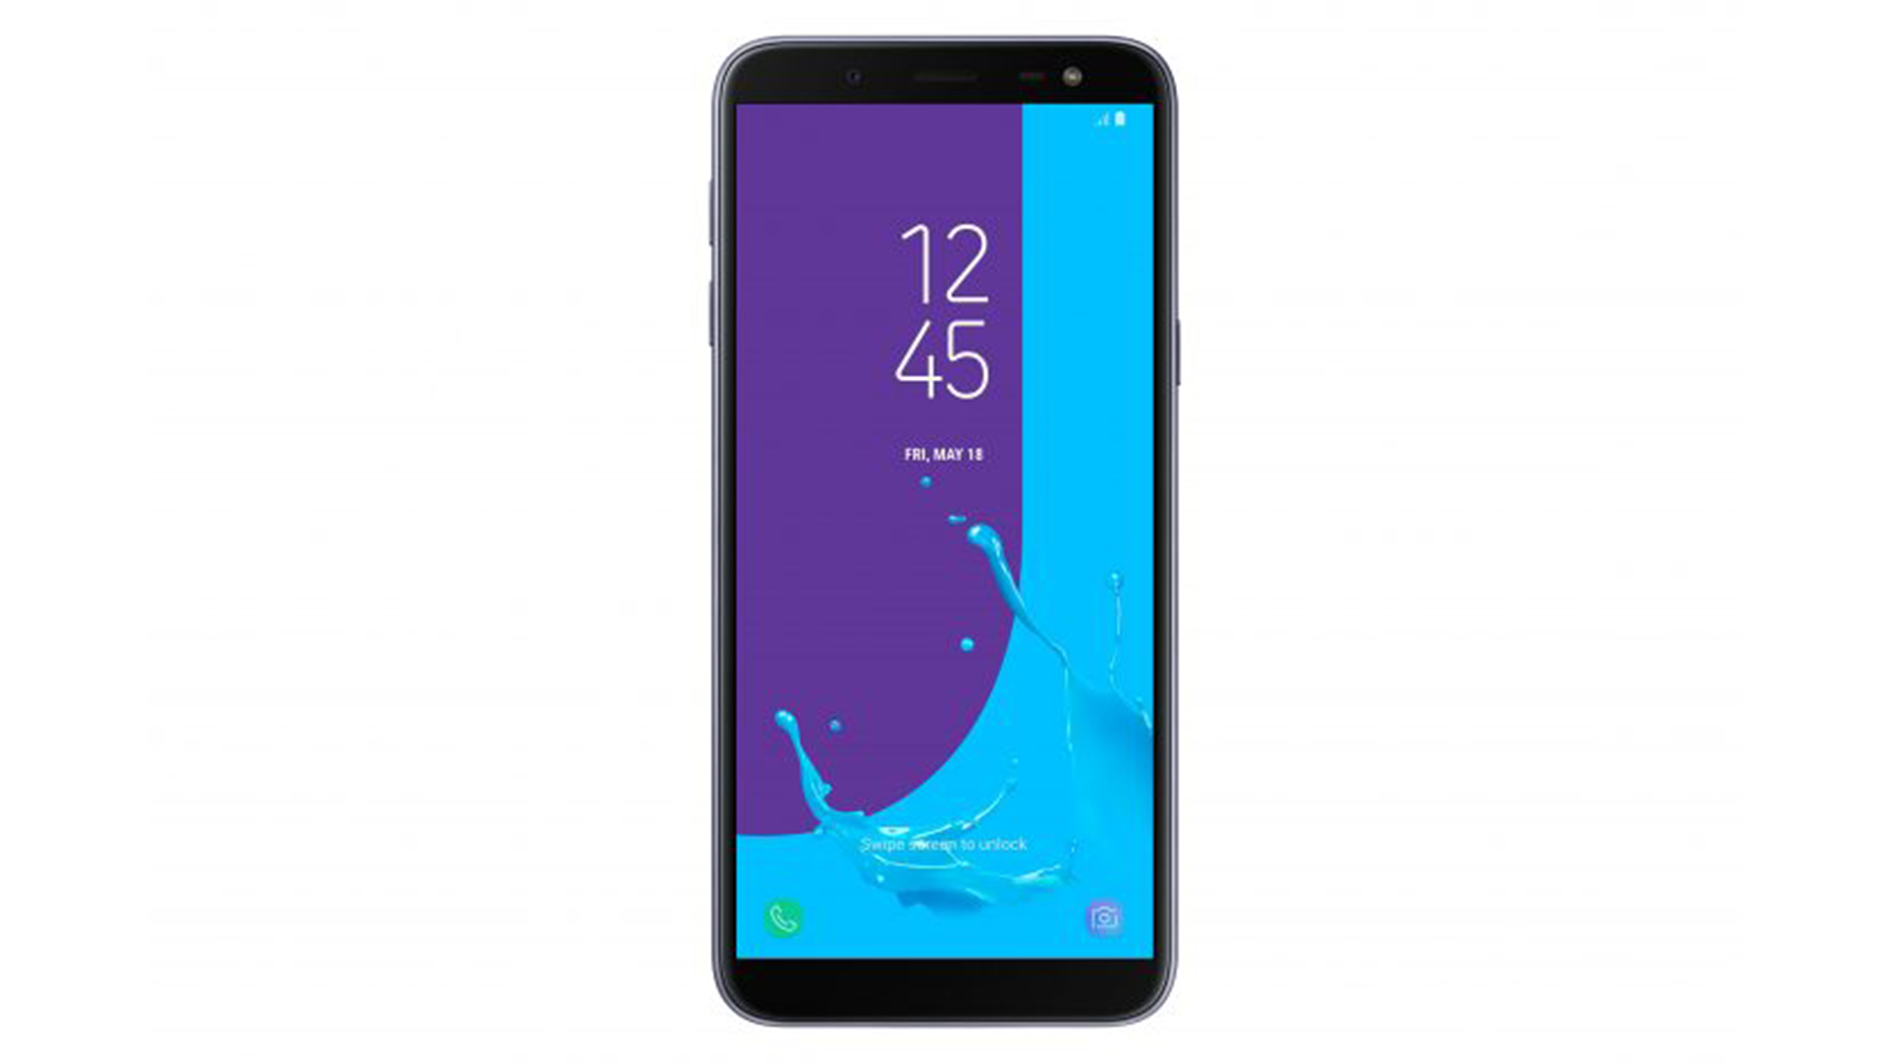 Samsung Galaxy J6 design What does it look like